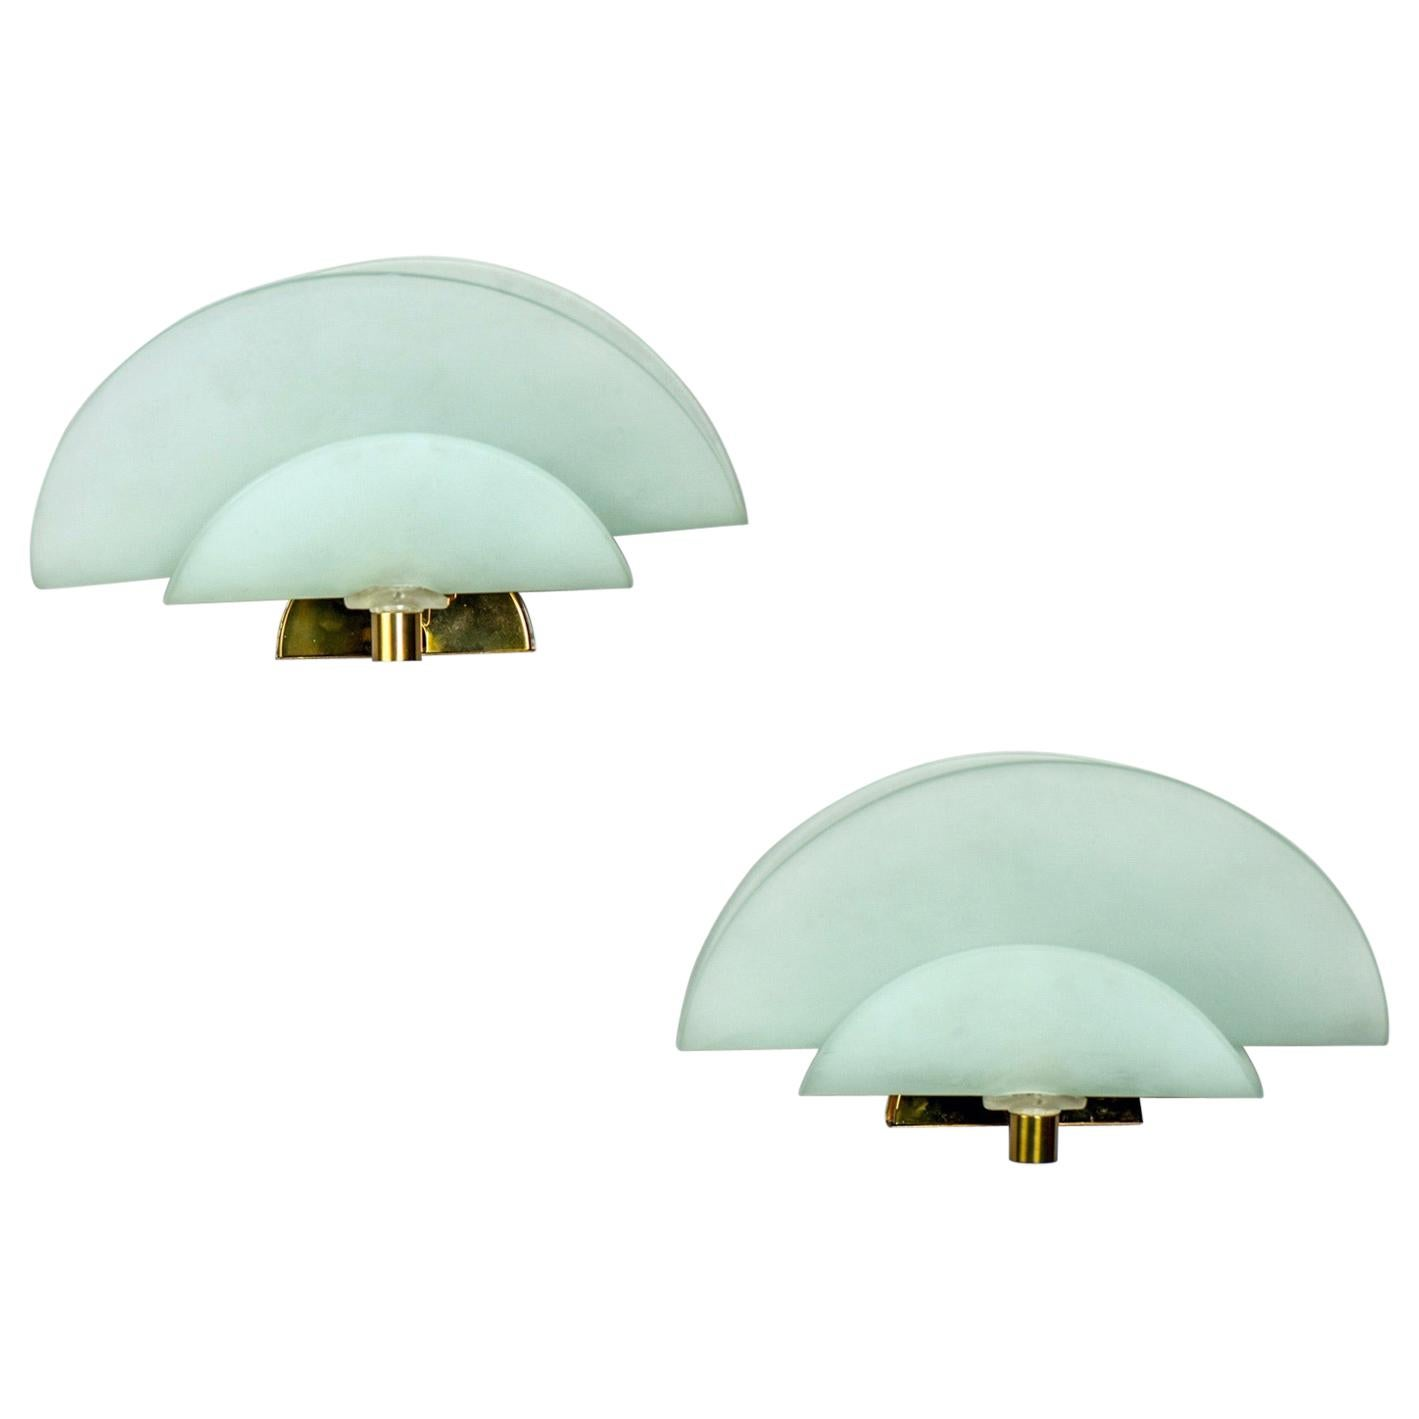 Pair of Midcentury Italian Glass Sconces with Brass Fittings